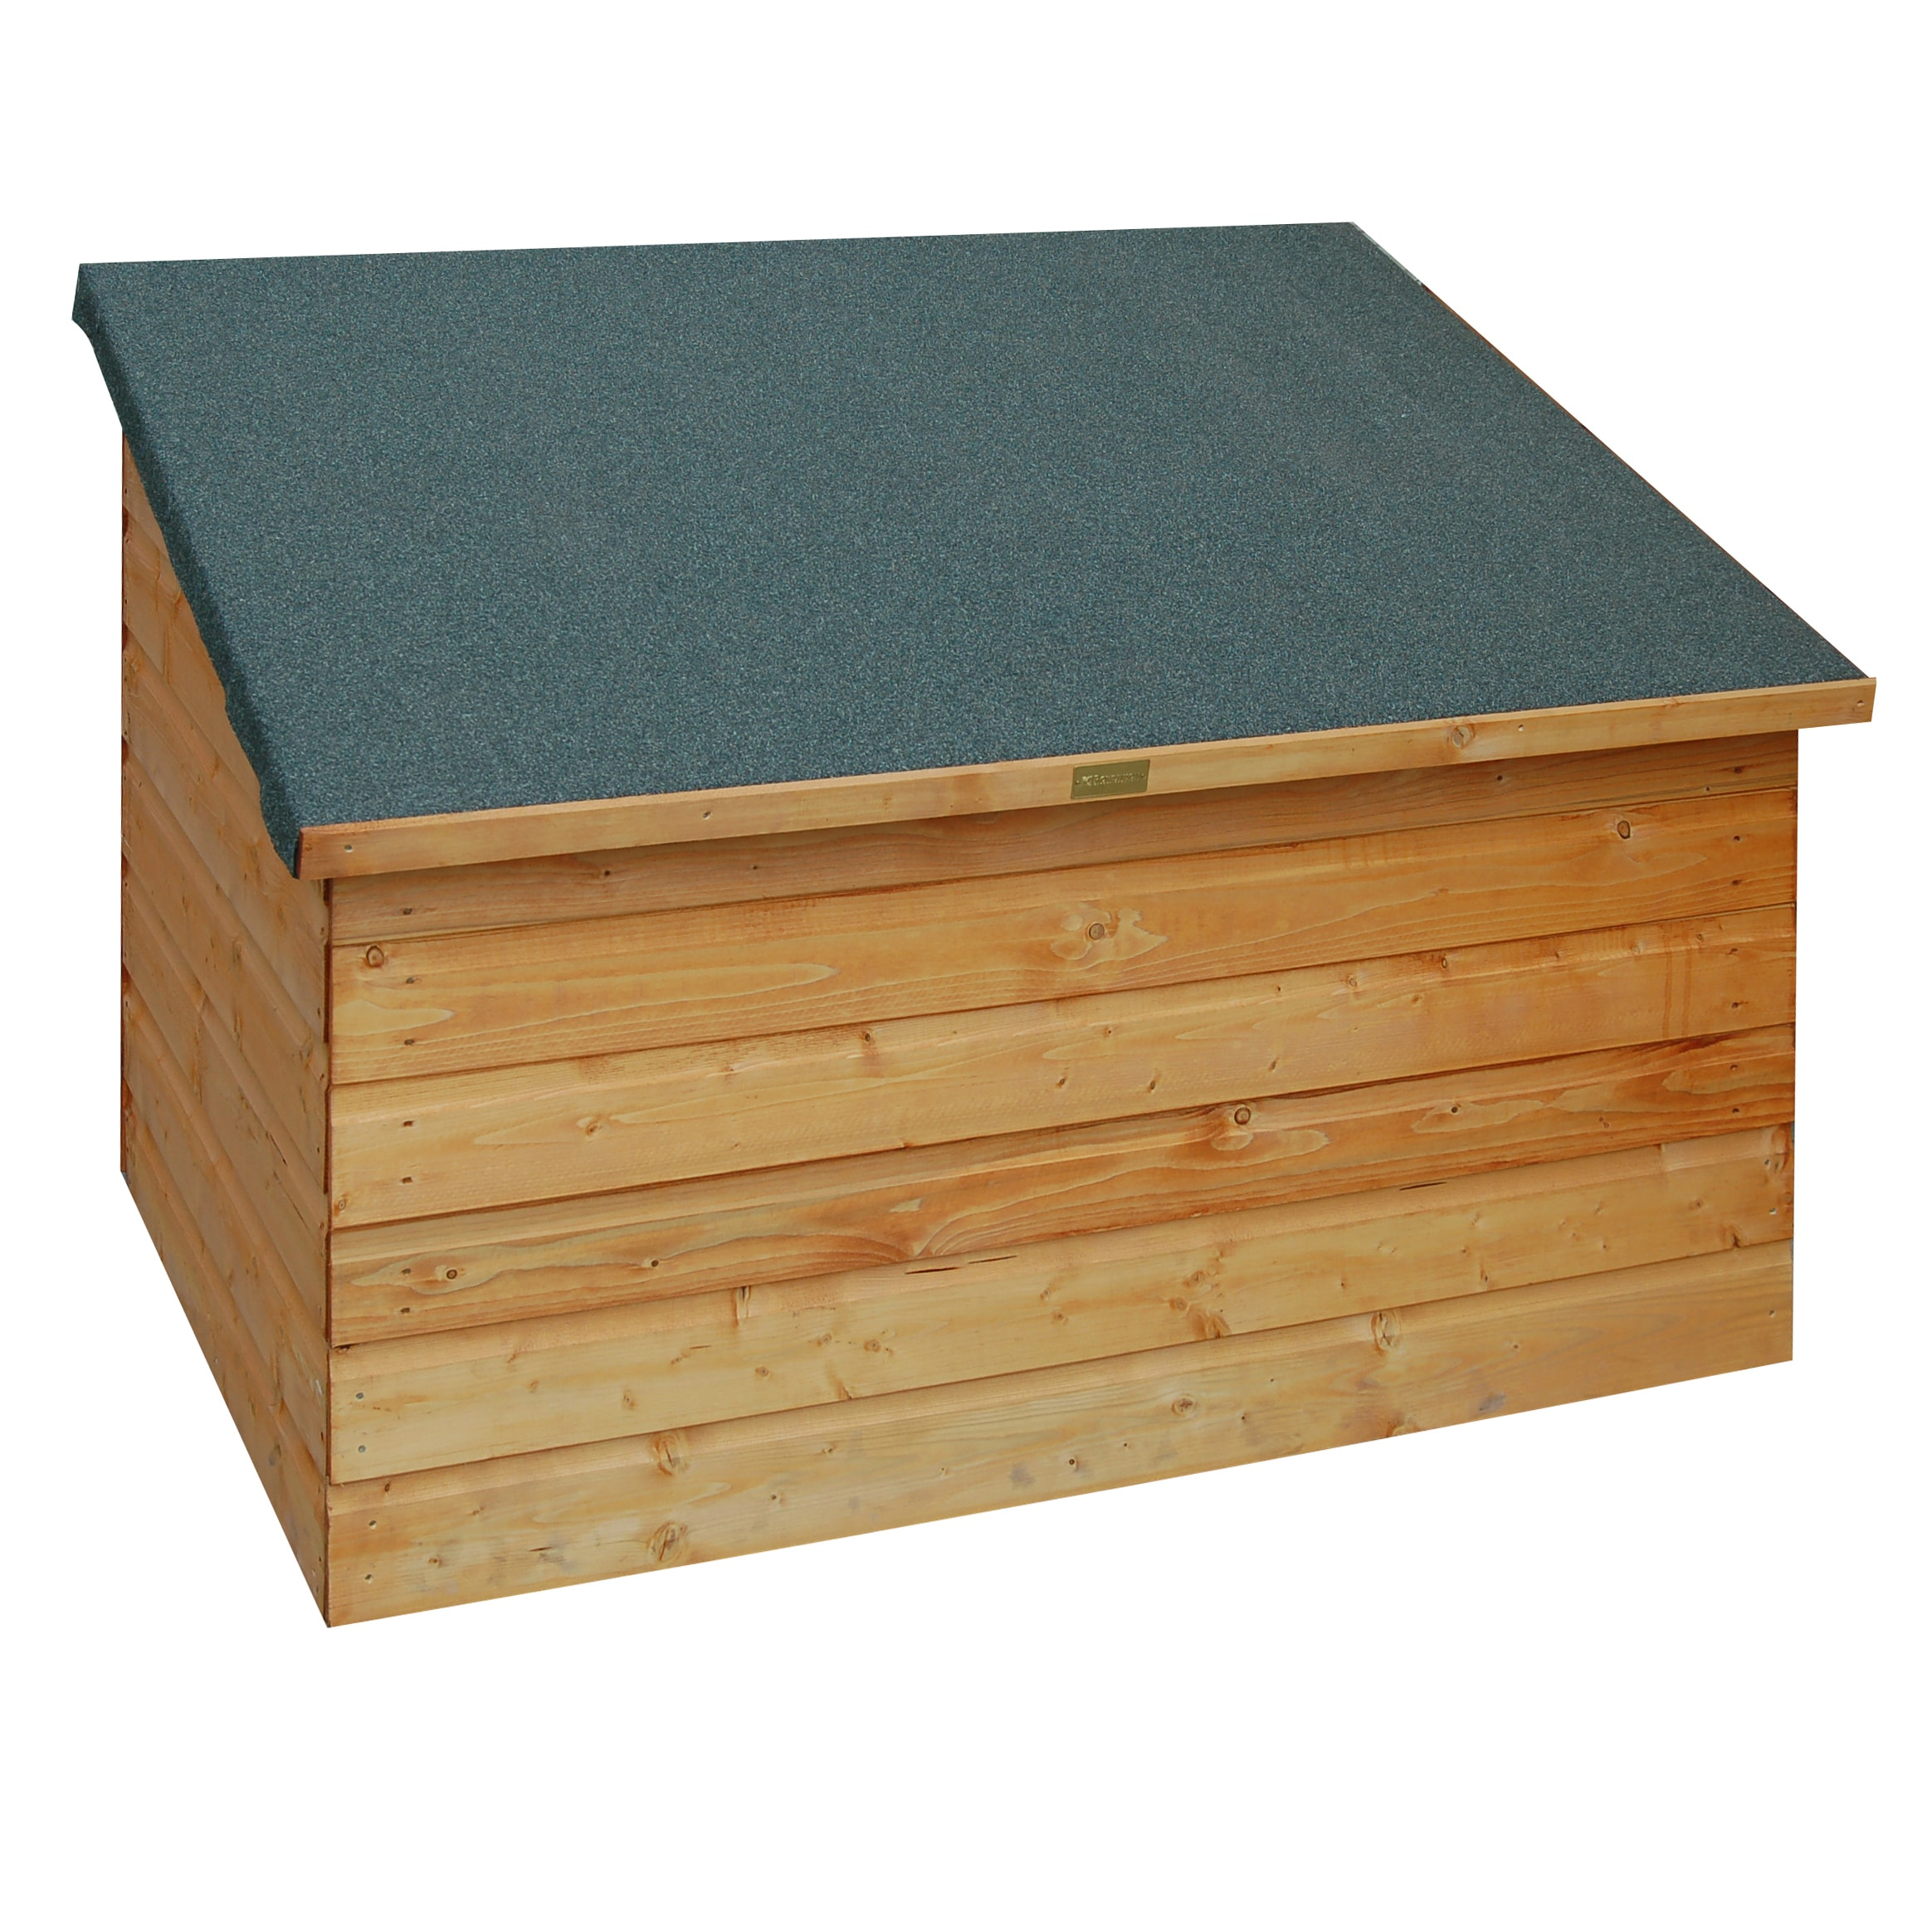 Shop Outdoor Wood Deck Storage Box   Free Shipping Today   Overstock.com    9721719